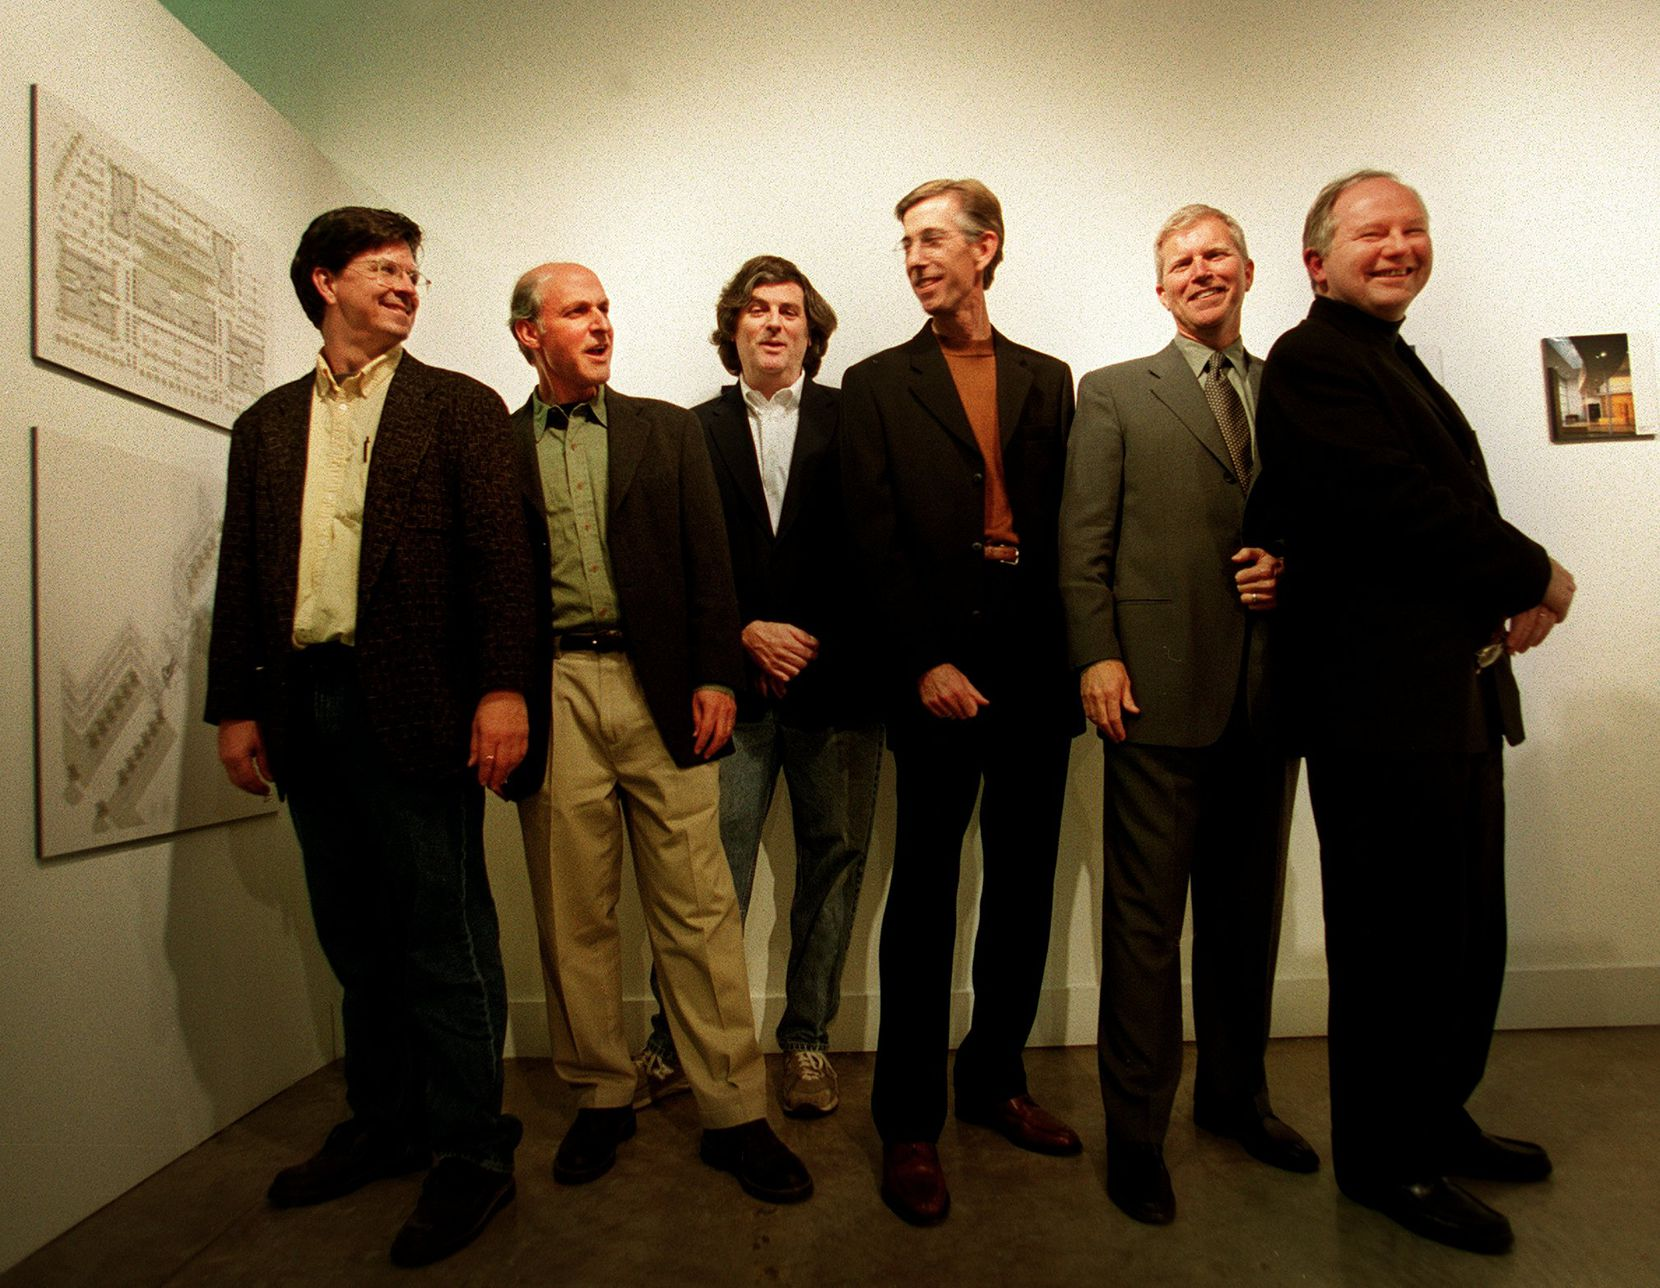 From left: Architects Dan Shipley, Max Levy, Gary Cunningham, Joe McCall and Lionel Morrison and curator Rick Brettell at the opening reception of the exhibit 'Five Dallas Modernist Architects' at the Visual Arts Building at the University of Texas at Dallas campus in 2002.